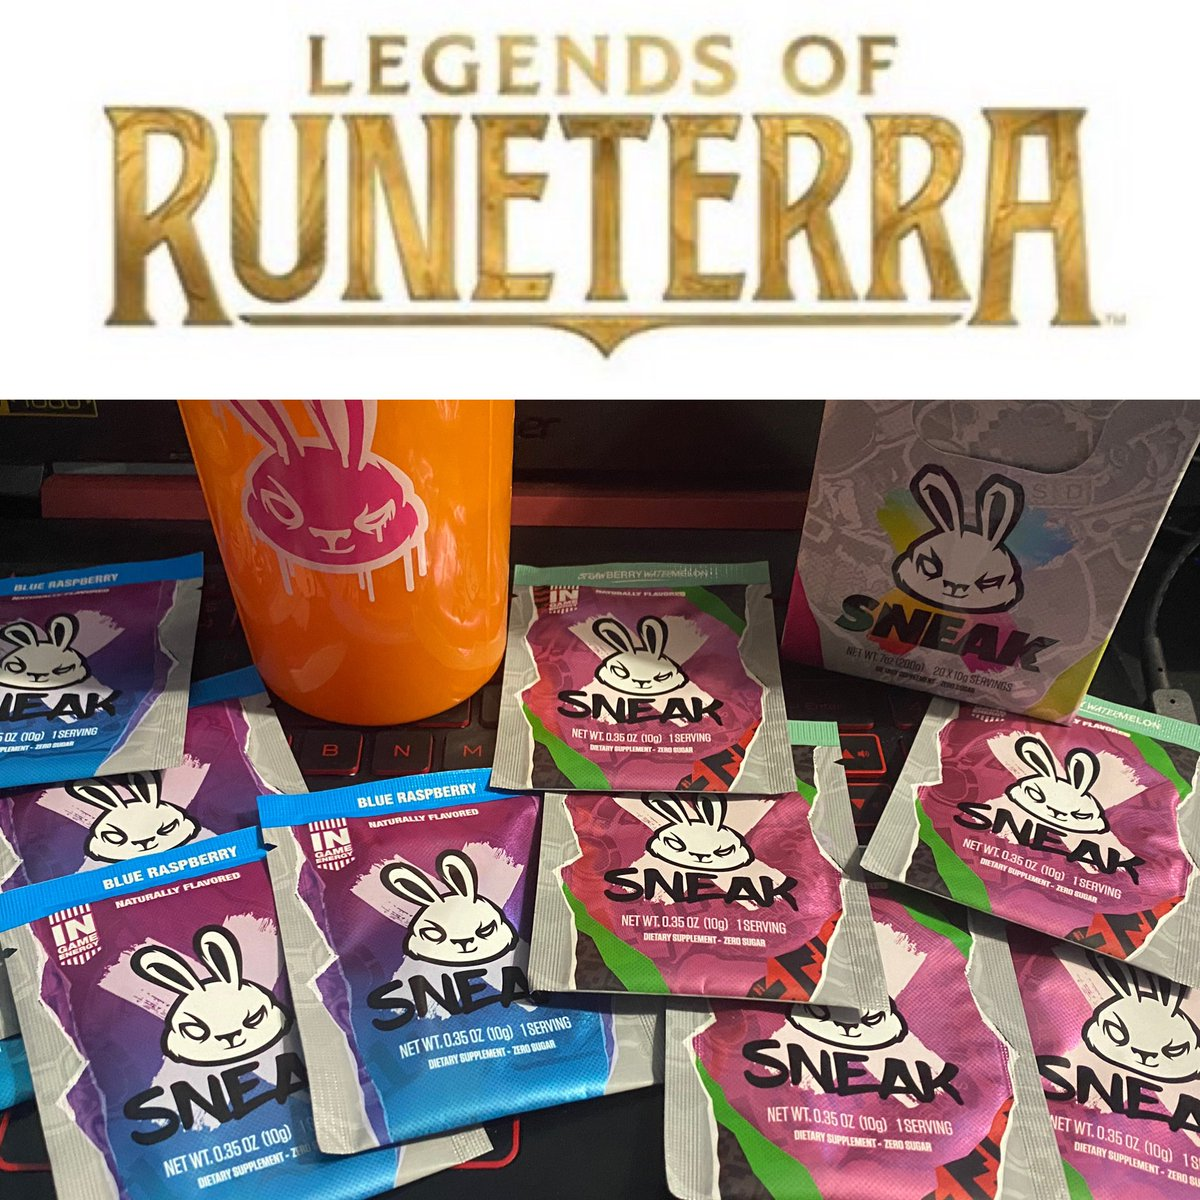 Decision have to be made! #wearesneak #sneakenergy #blueraspberry or #strawberrywatermelon  #LegendsOfRuneterra #gaming #steelseries #gamerslife #energy #drinking #videogames #pcgaming #bxa #bxagamingpic.twitter.com/Qf3o4h44Gq